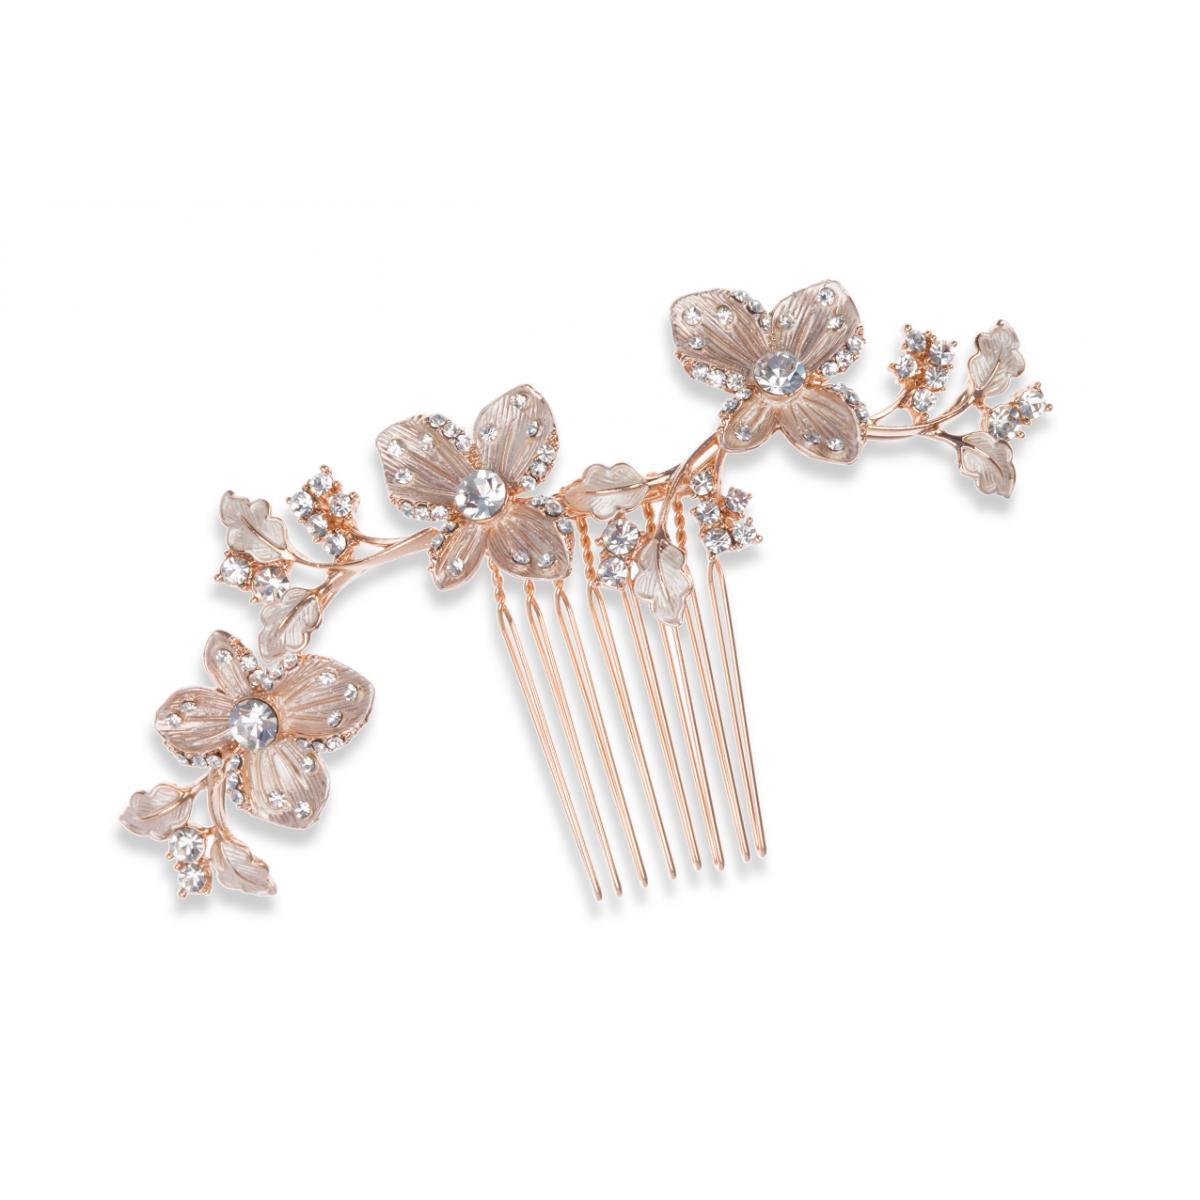 Ivory & Co Petunia Golden Hair Comb 1